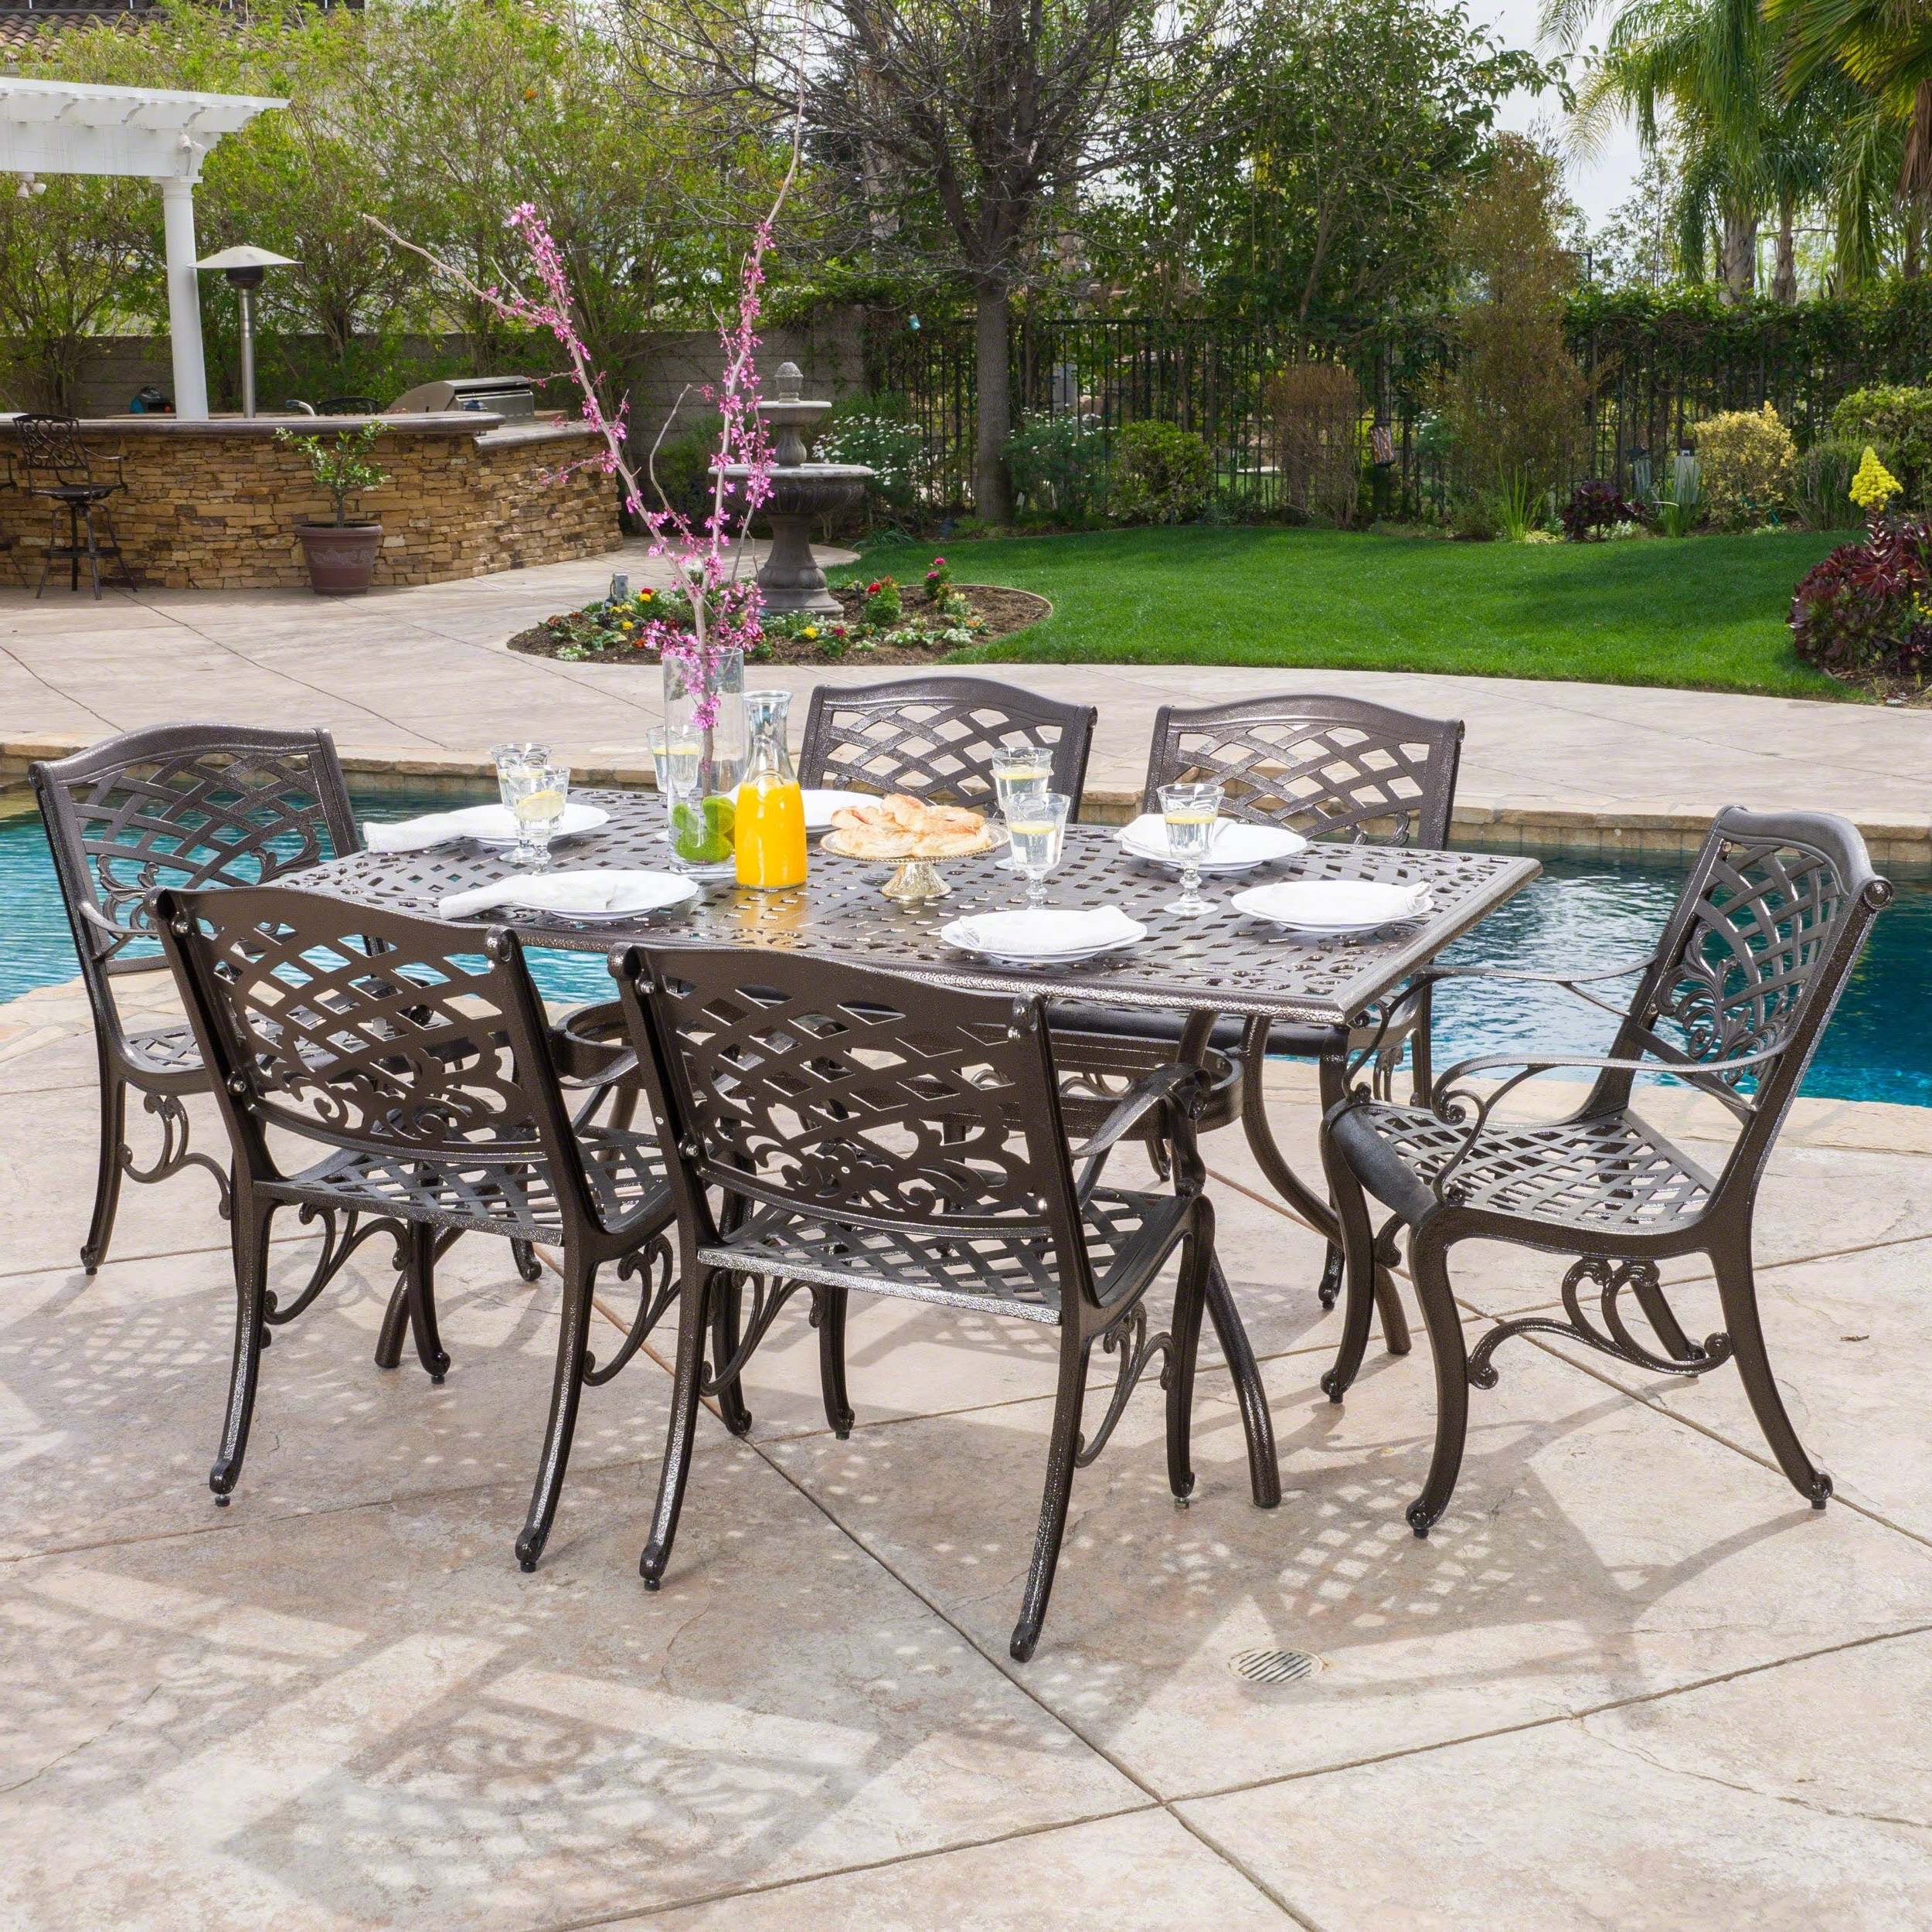 Best Rated In Patio Furniture Sets & Helpful Customer Reviews Regarding Most Popular Dot Patio Conversation Sets (View 11 of 15)